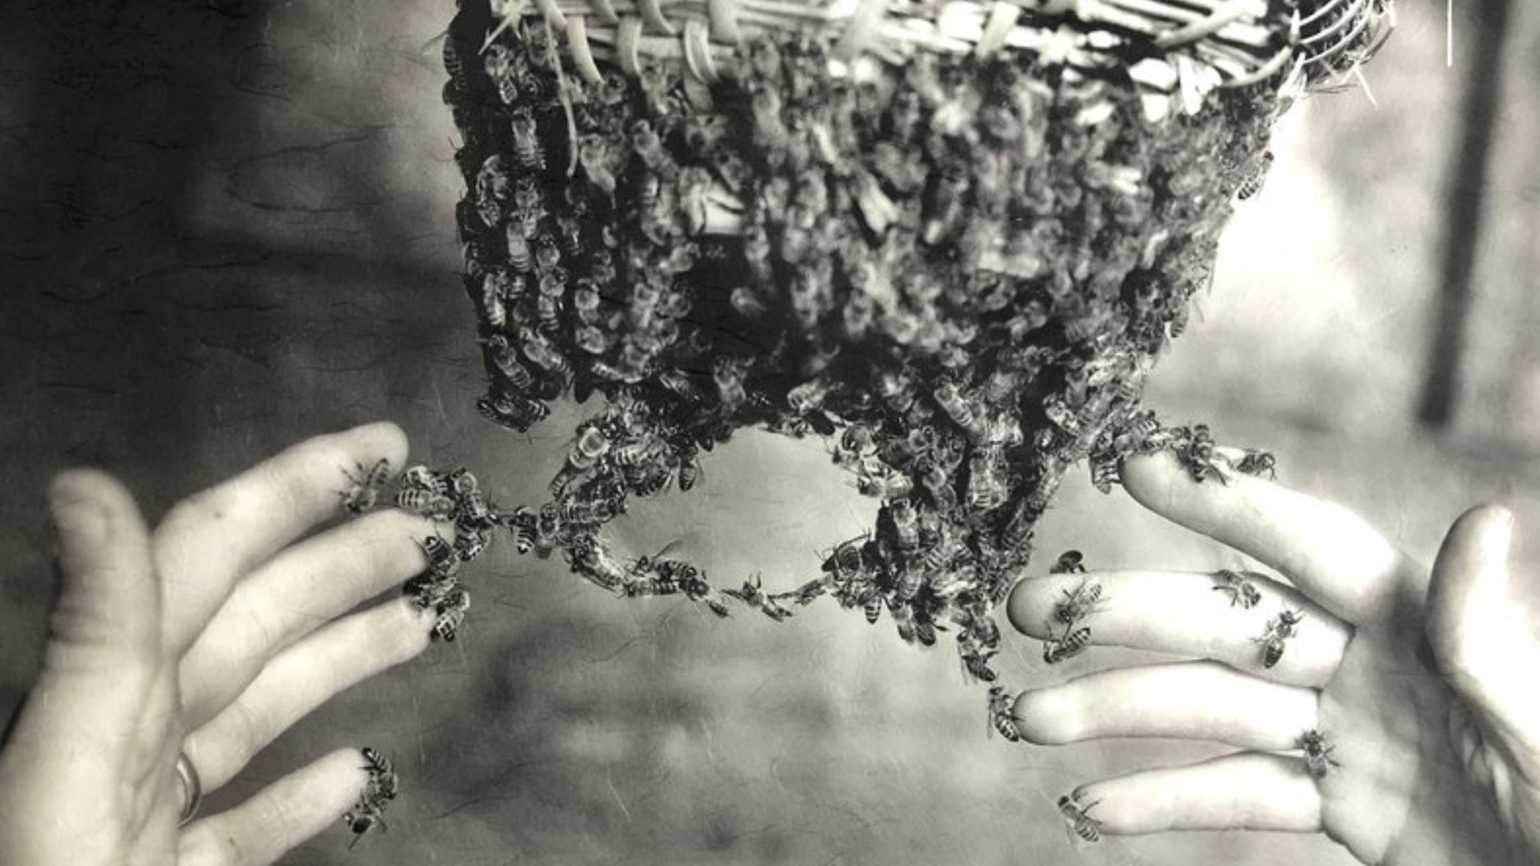 A black and white photo of a beekeeper's hands handling a hive of bees.